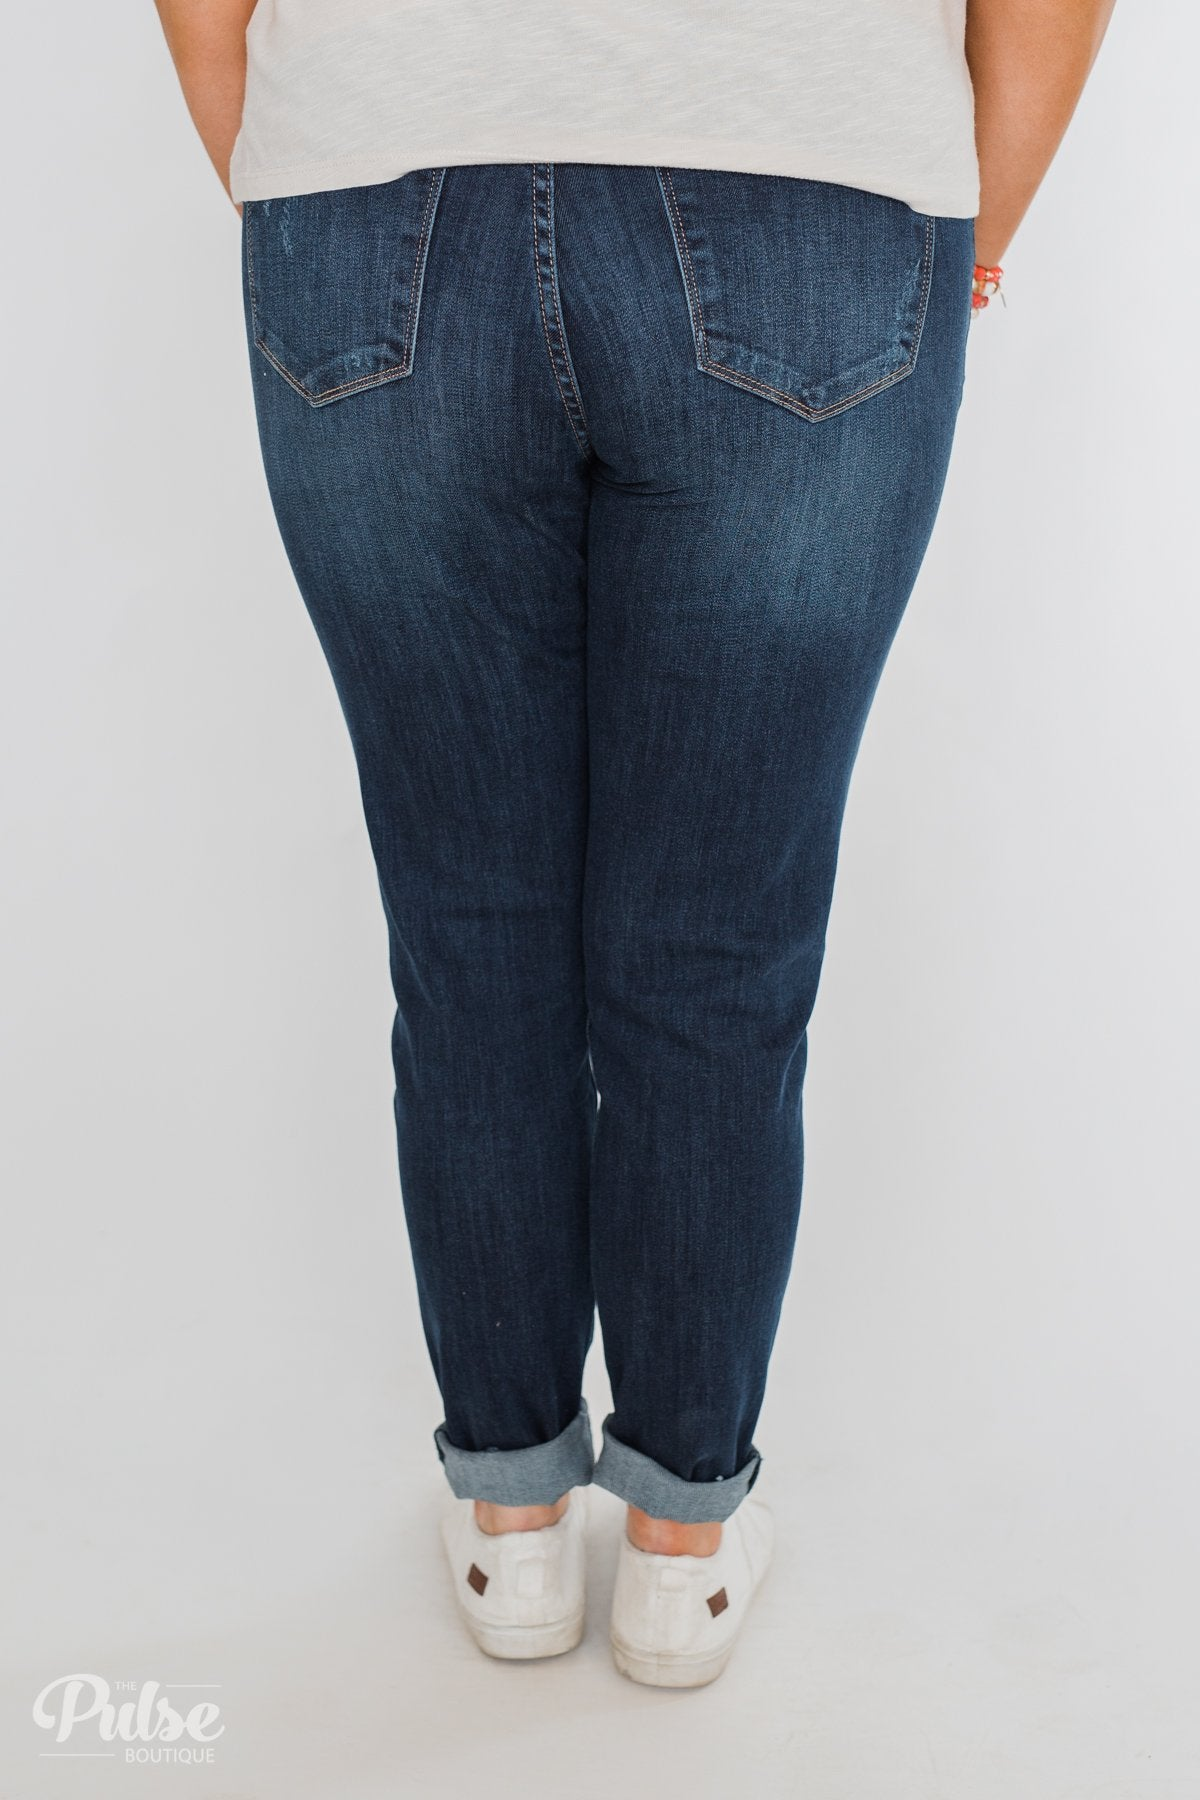 KanCan Jeans- Lillian Wash